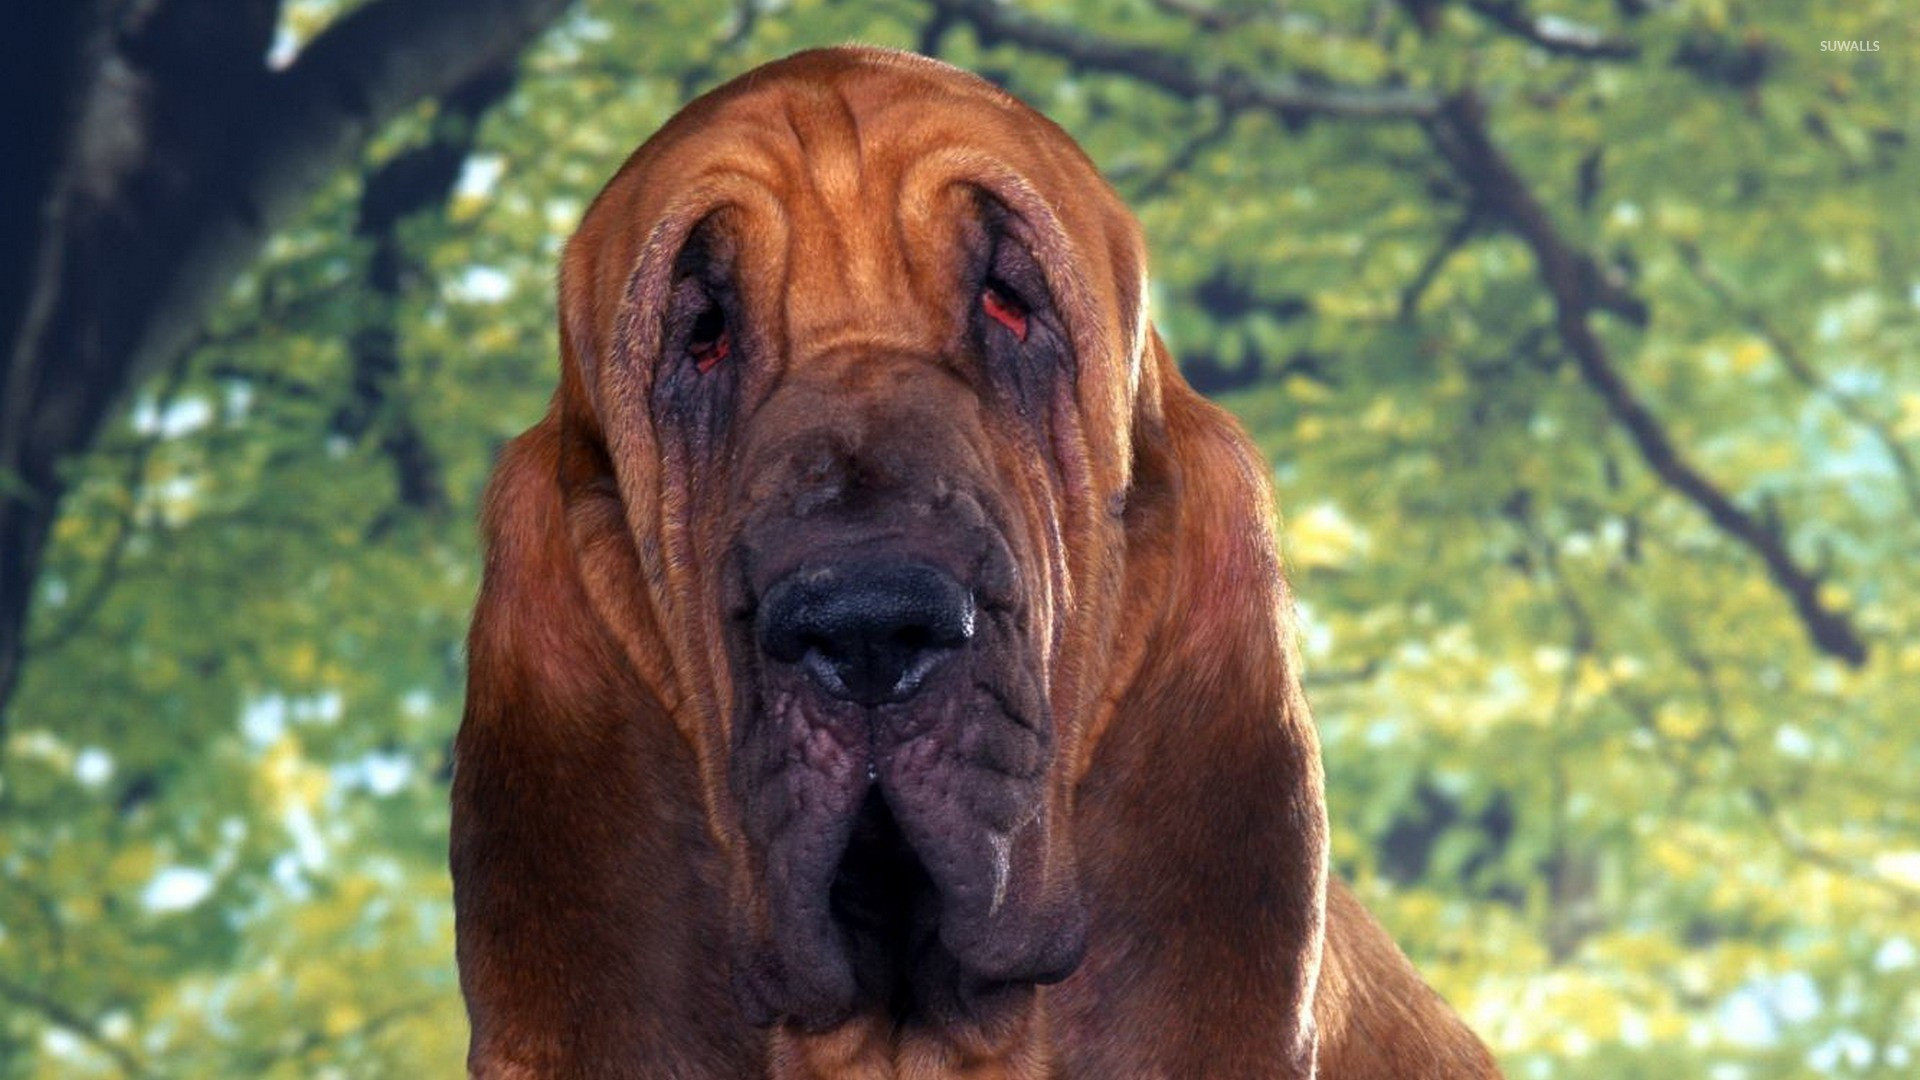 Bloodhound wallpaper - Animal wallpapers - #21850